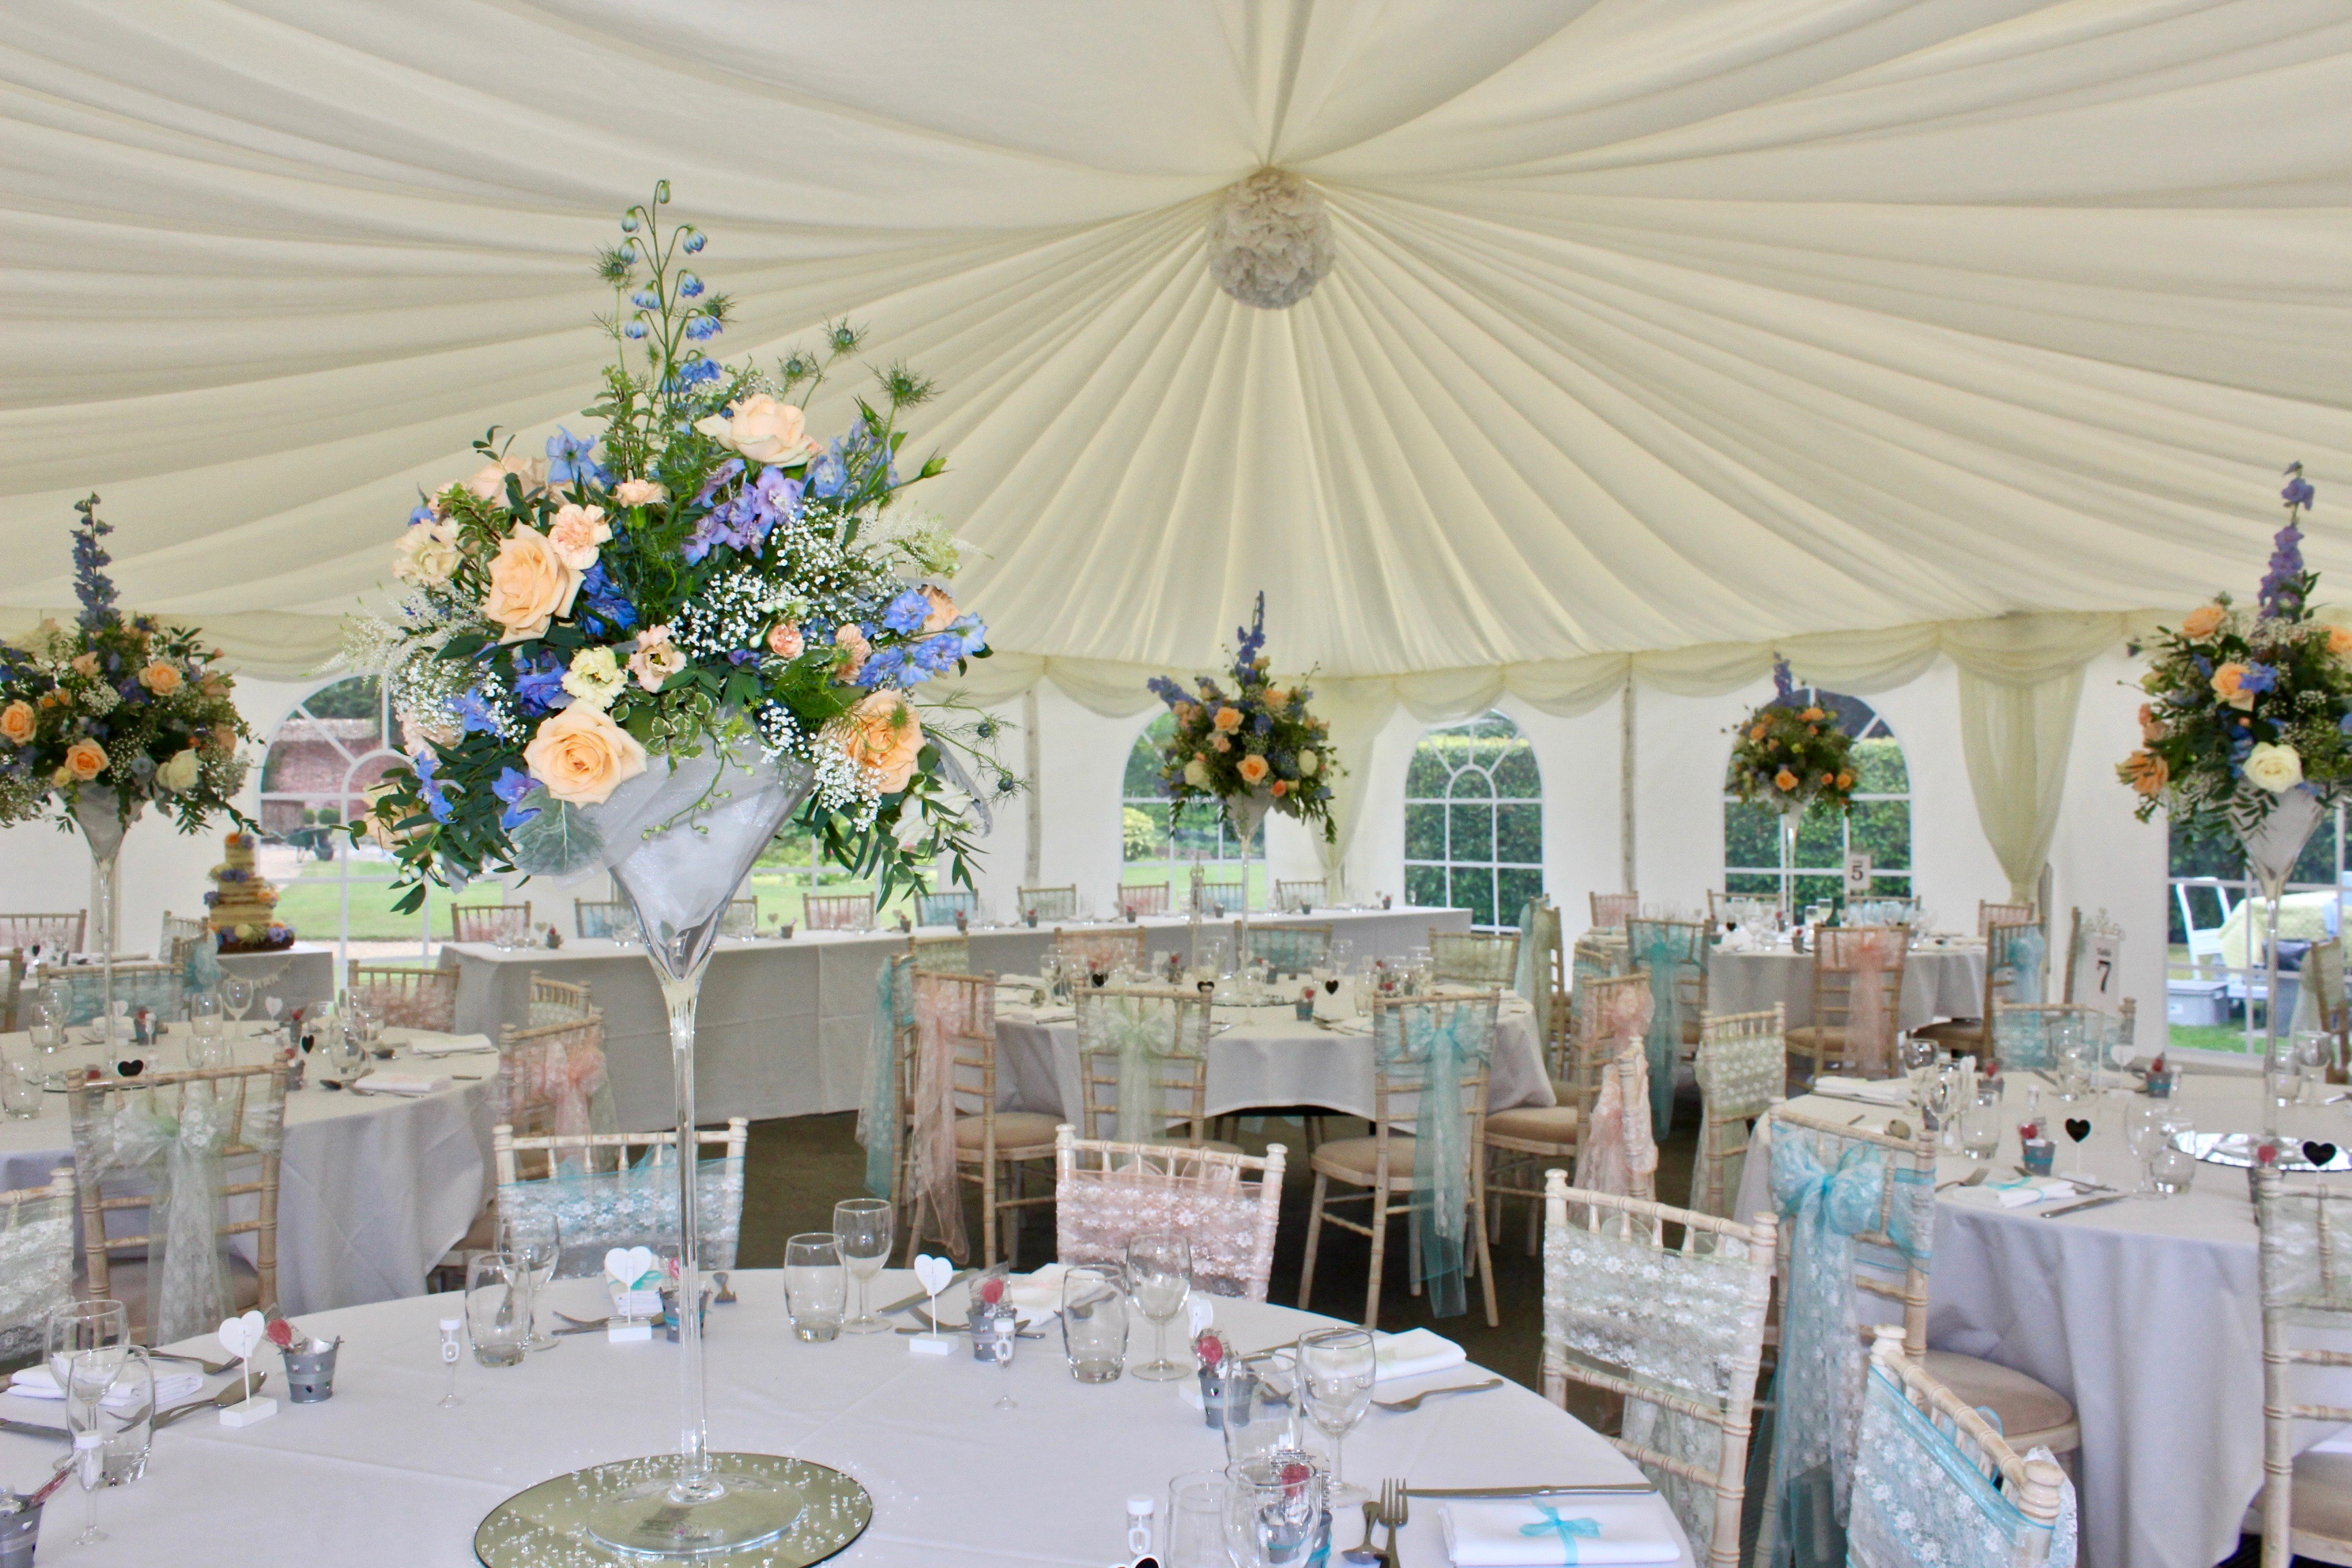 The Orangery Suite marquee